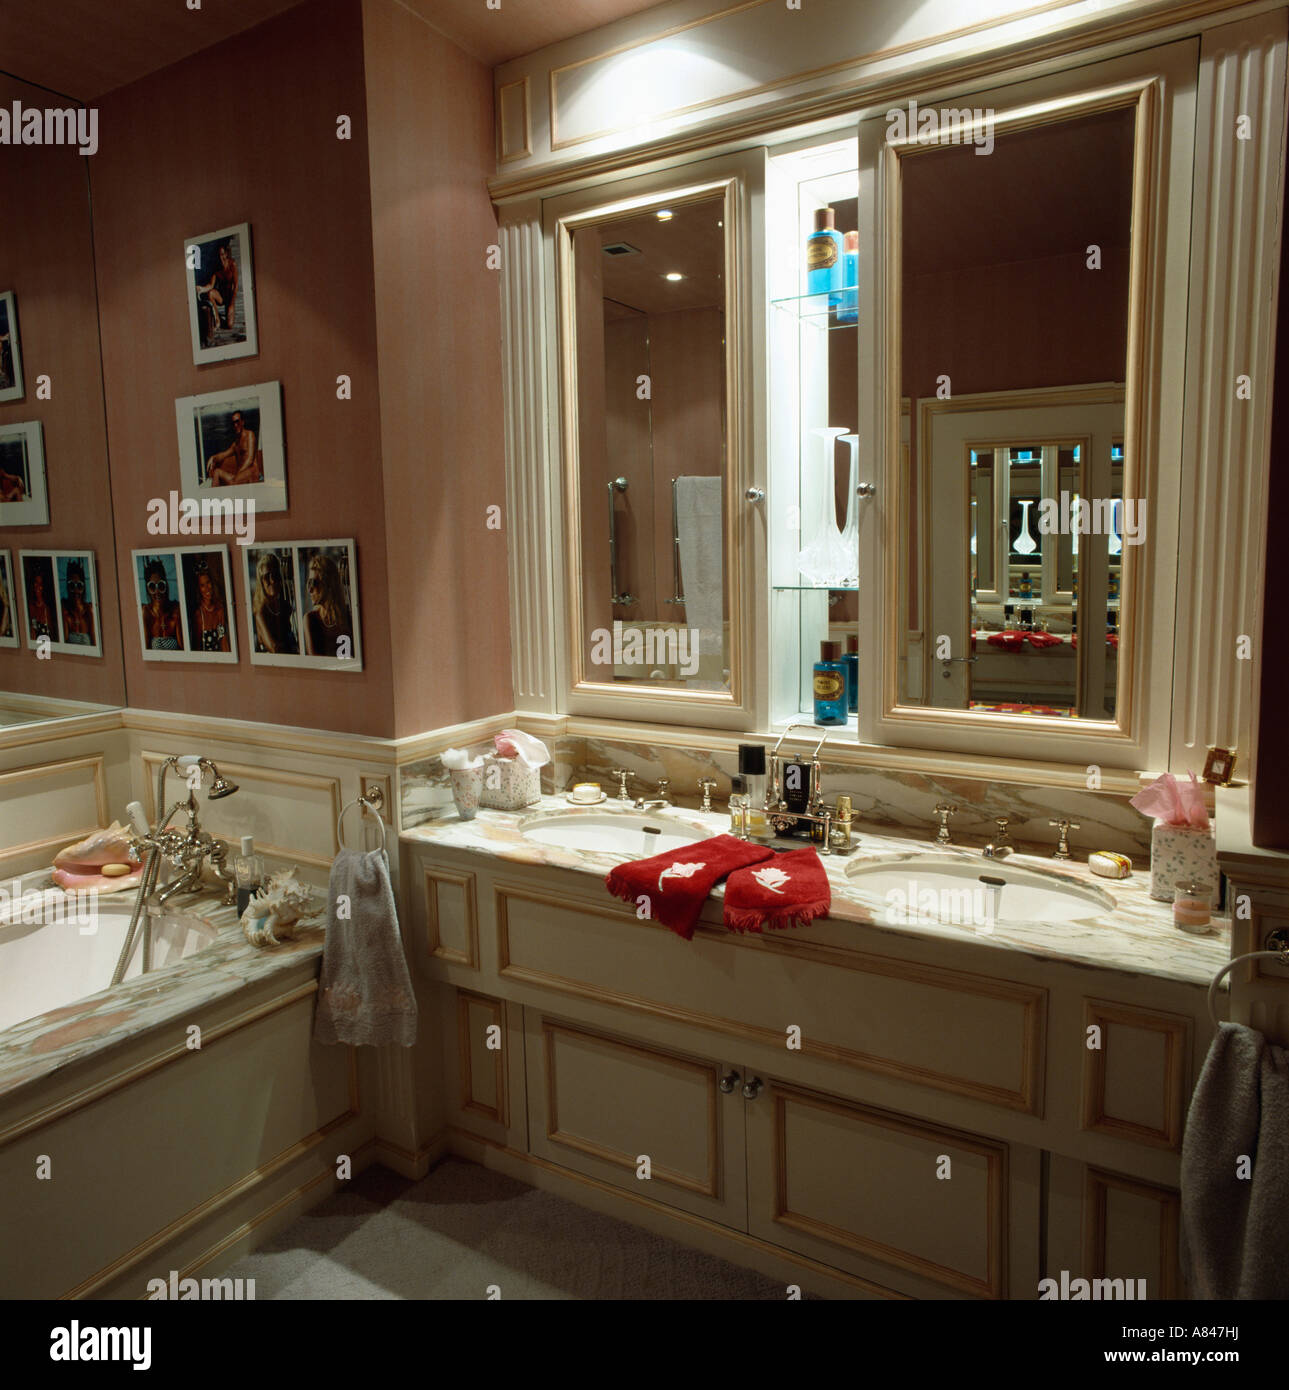 Double mirrors above double basins in vanity unit in town bathroom - Stock Image